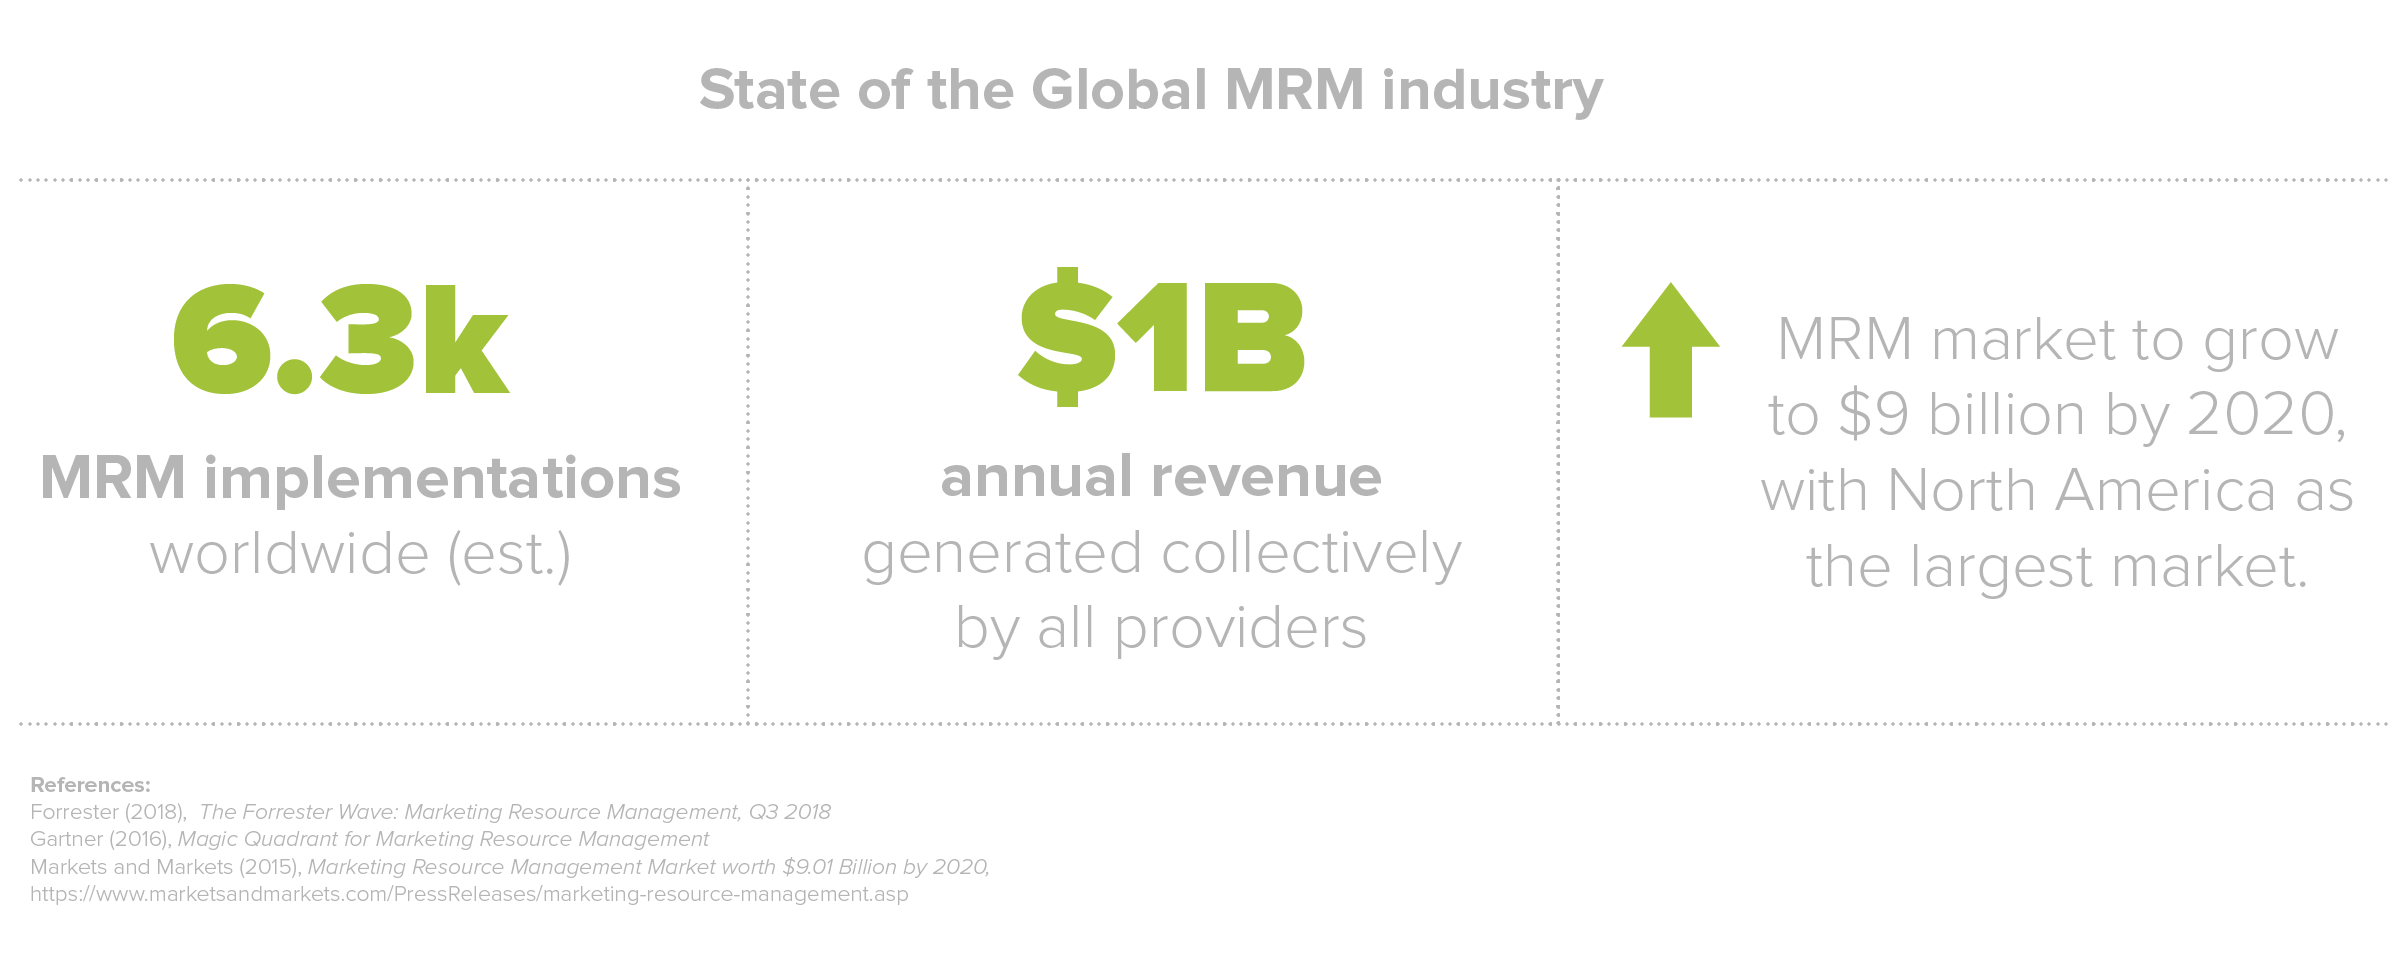 State of the Global MRM Industry